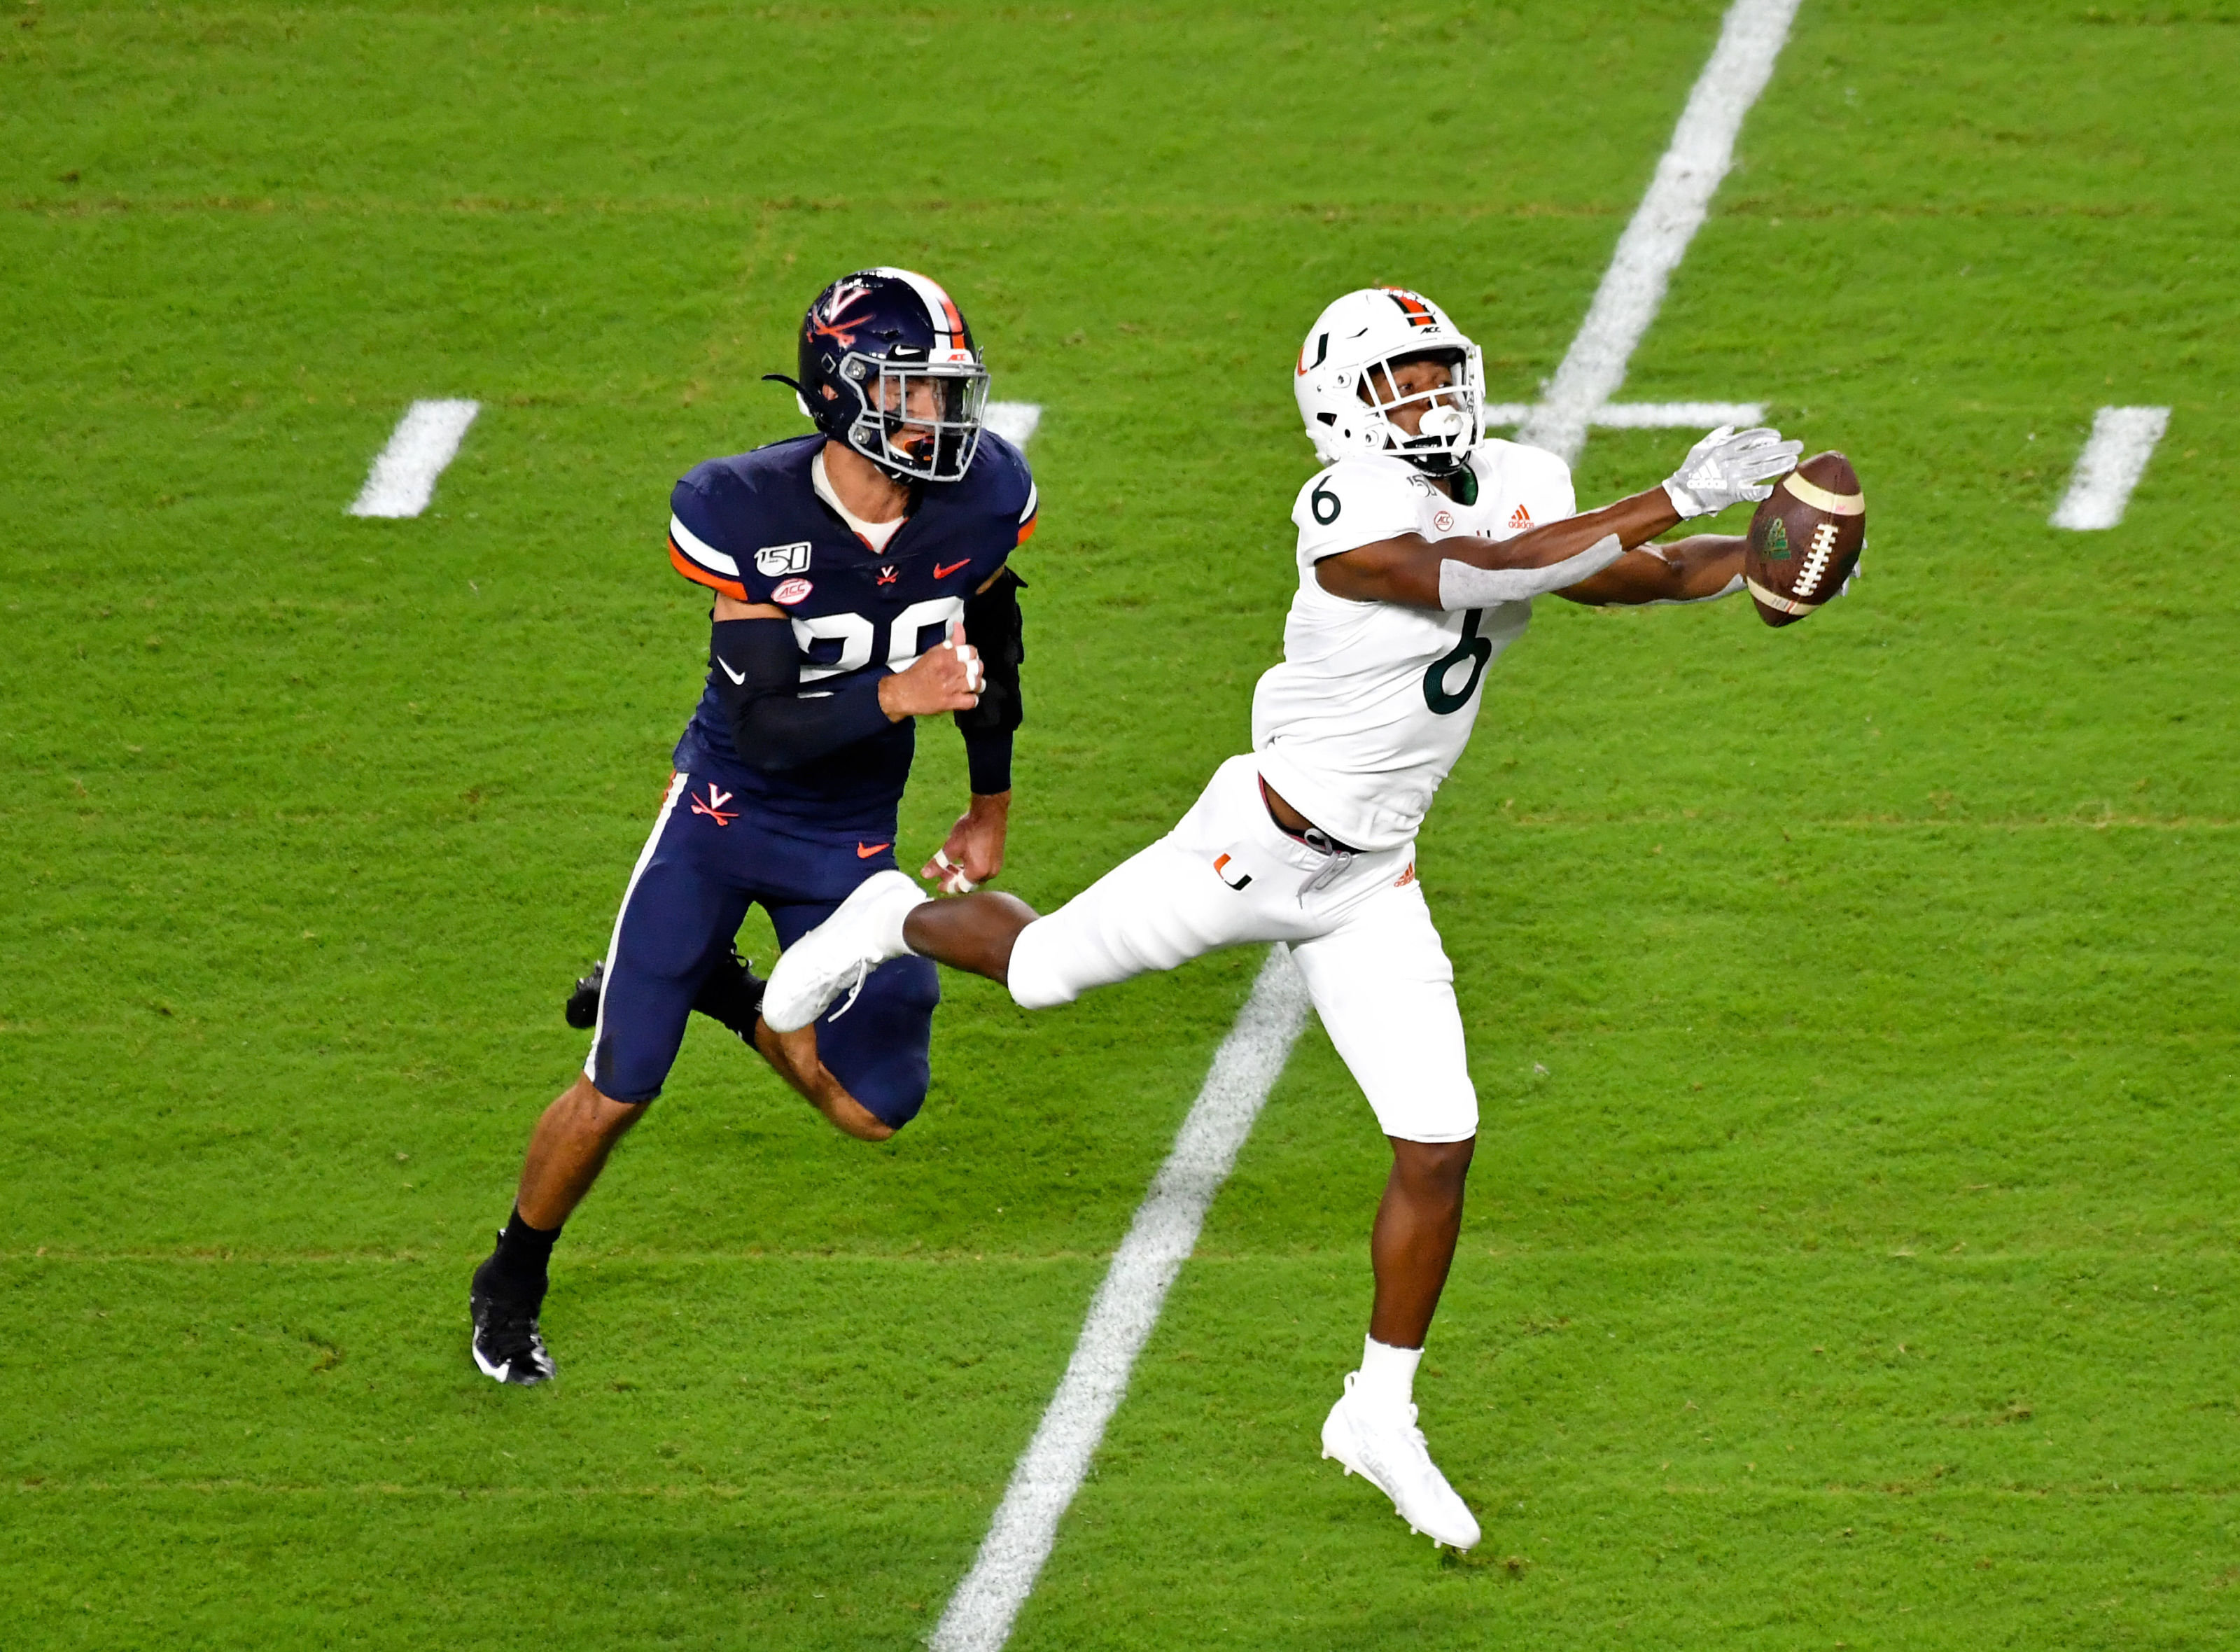 Virginia At Miami Football Game Six And Broadcast Information